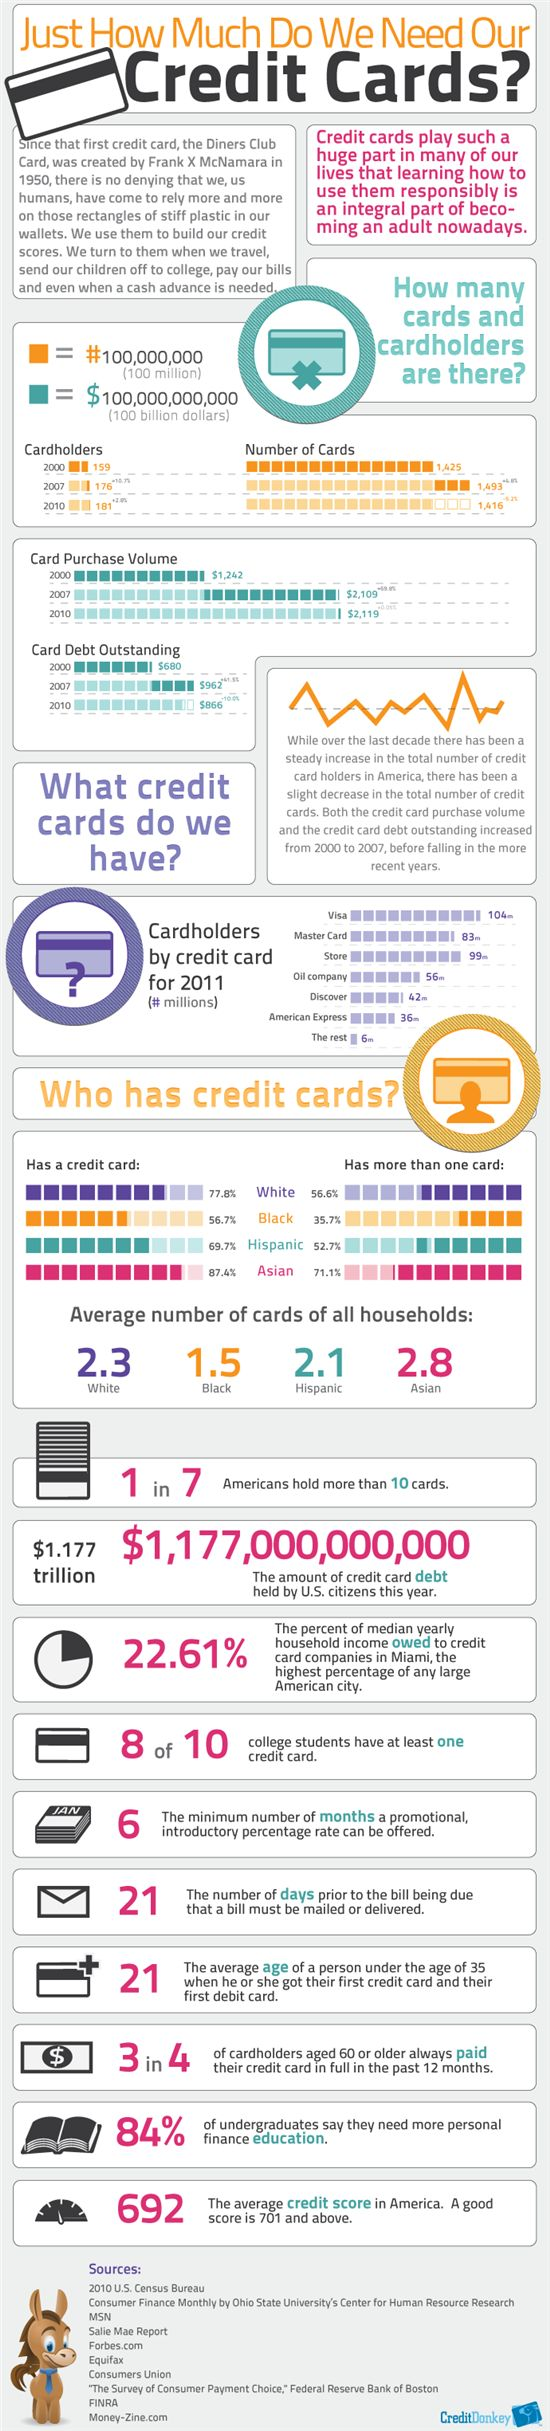 I Need A Credit Card Credit Card Infographic Small Business Credit Cards Credit Card